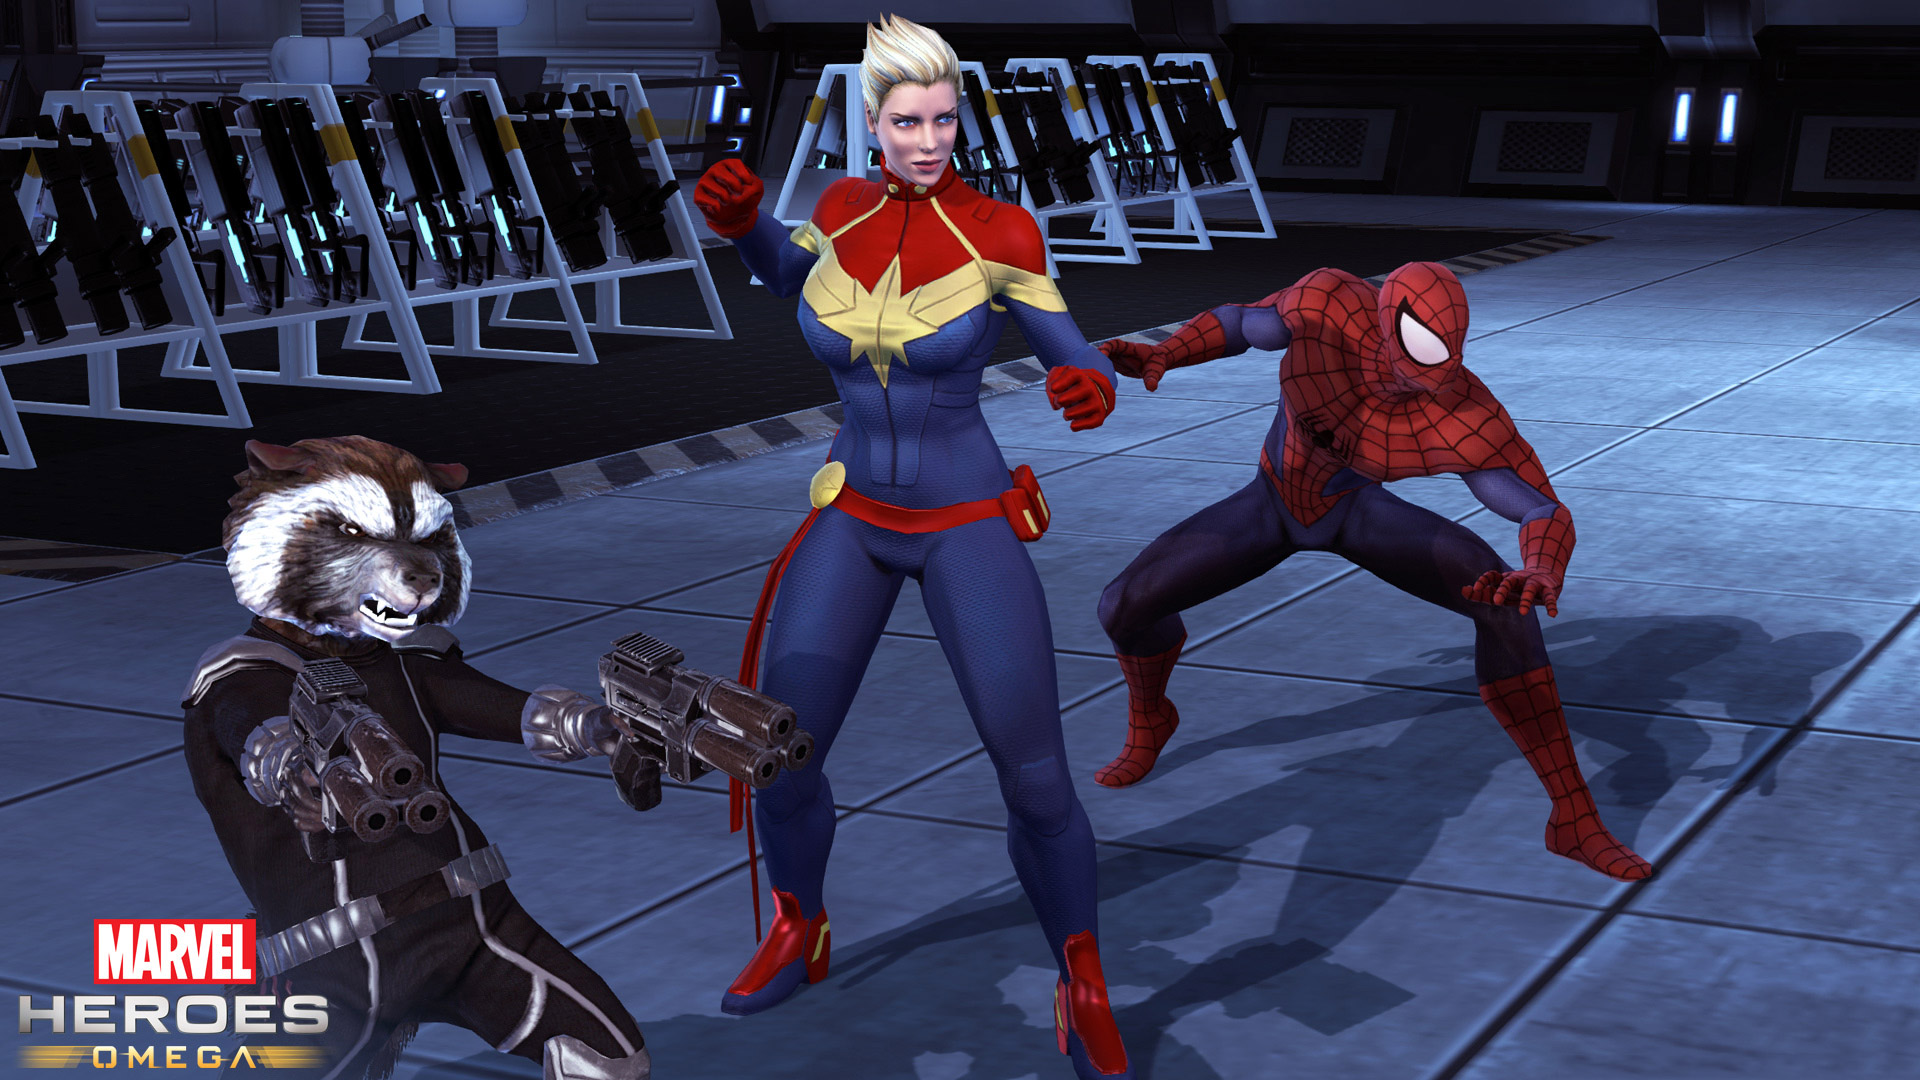 Marvel Heroes Wallpaper in 1920x1080